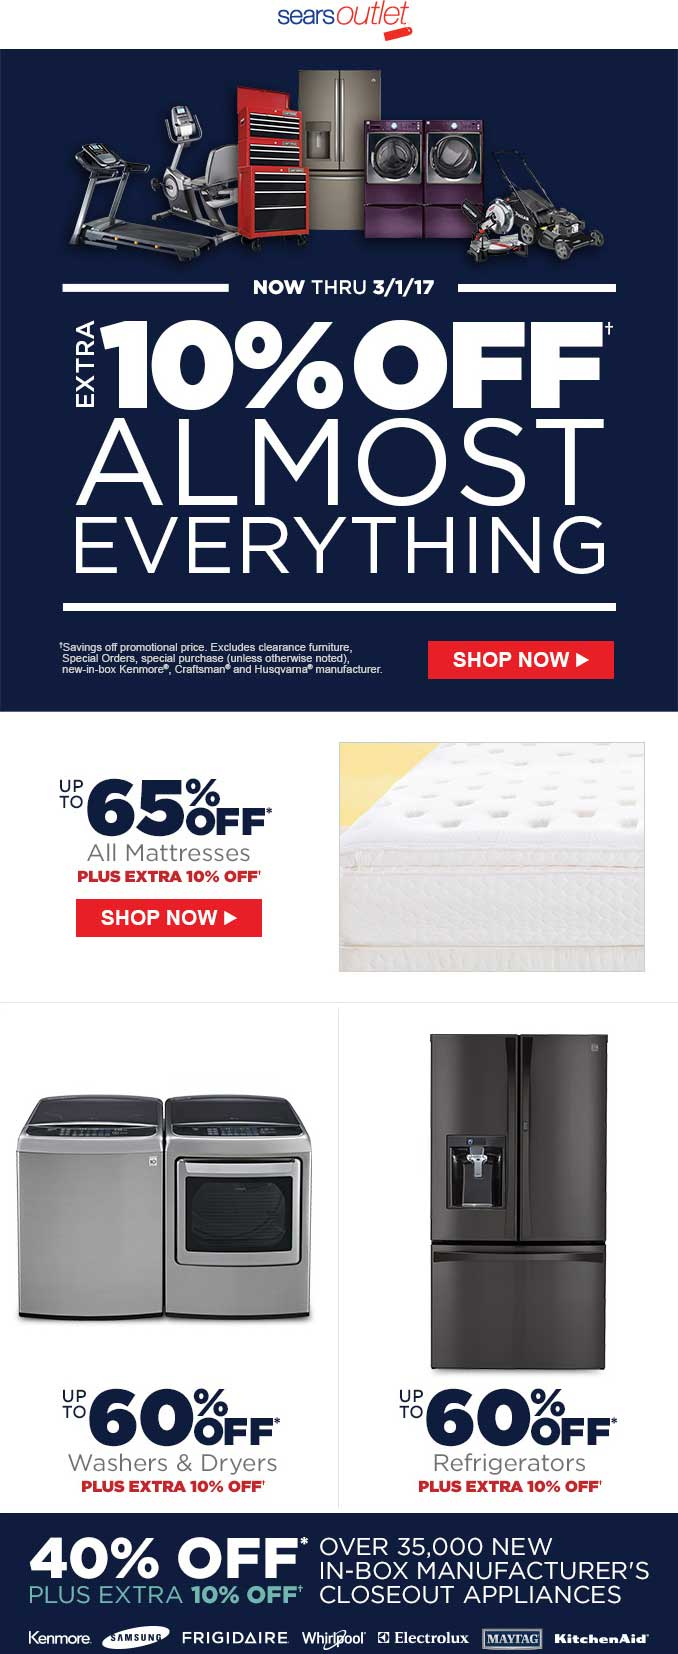 SearsOutlet.com Promo Coupon Extra 10% off at Sears Outlet